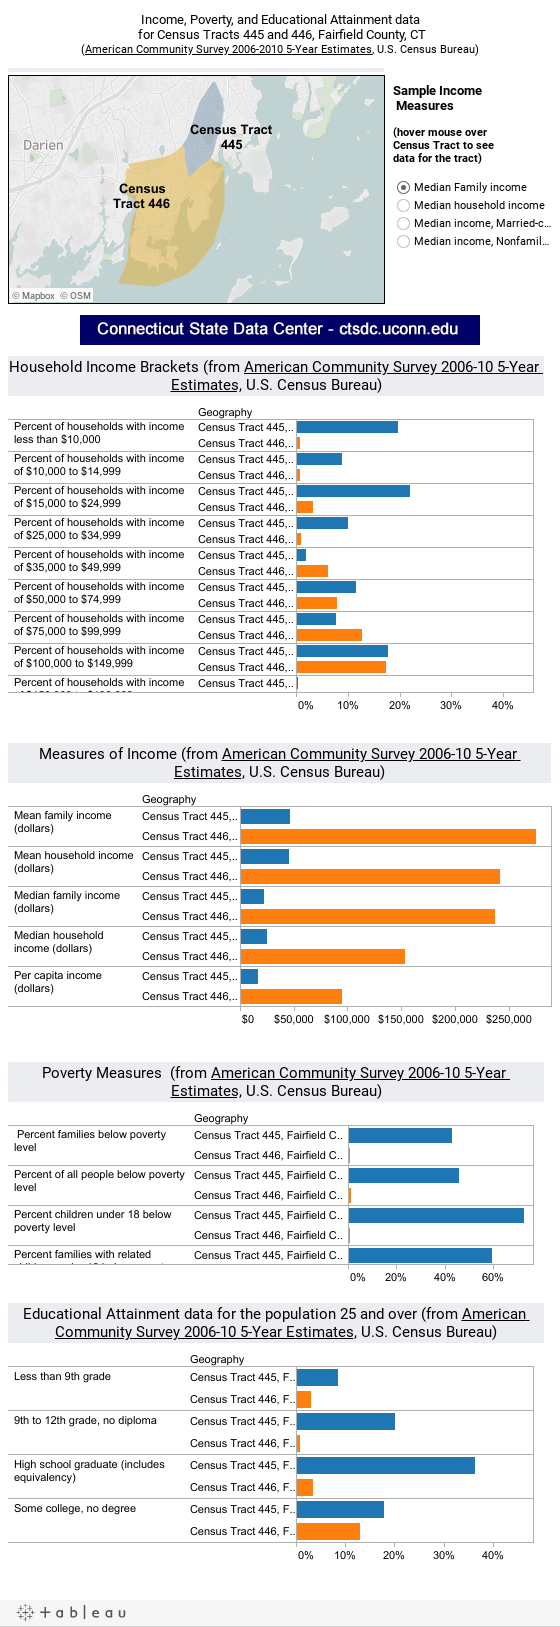 Income, Poverty, and Educational Attainment data for Census Tracts 445 and 446, Fairfield County, CT(American Community Survey 2006-2010 5-Year Estimates, U.S. Census Bureau)